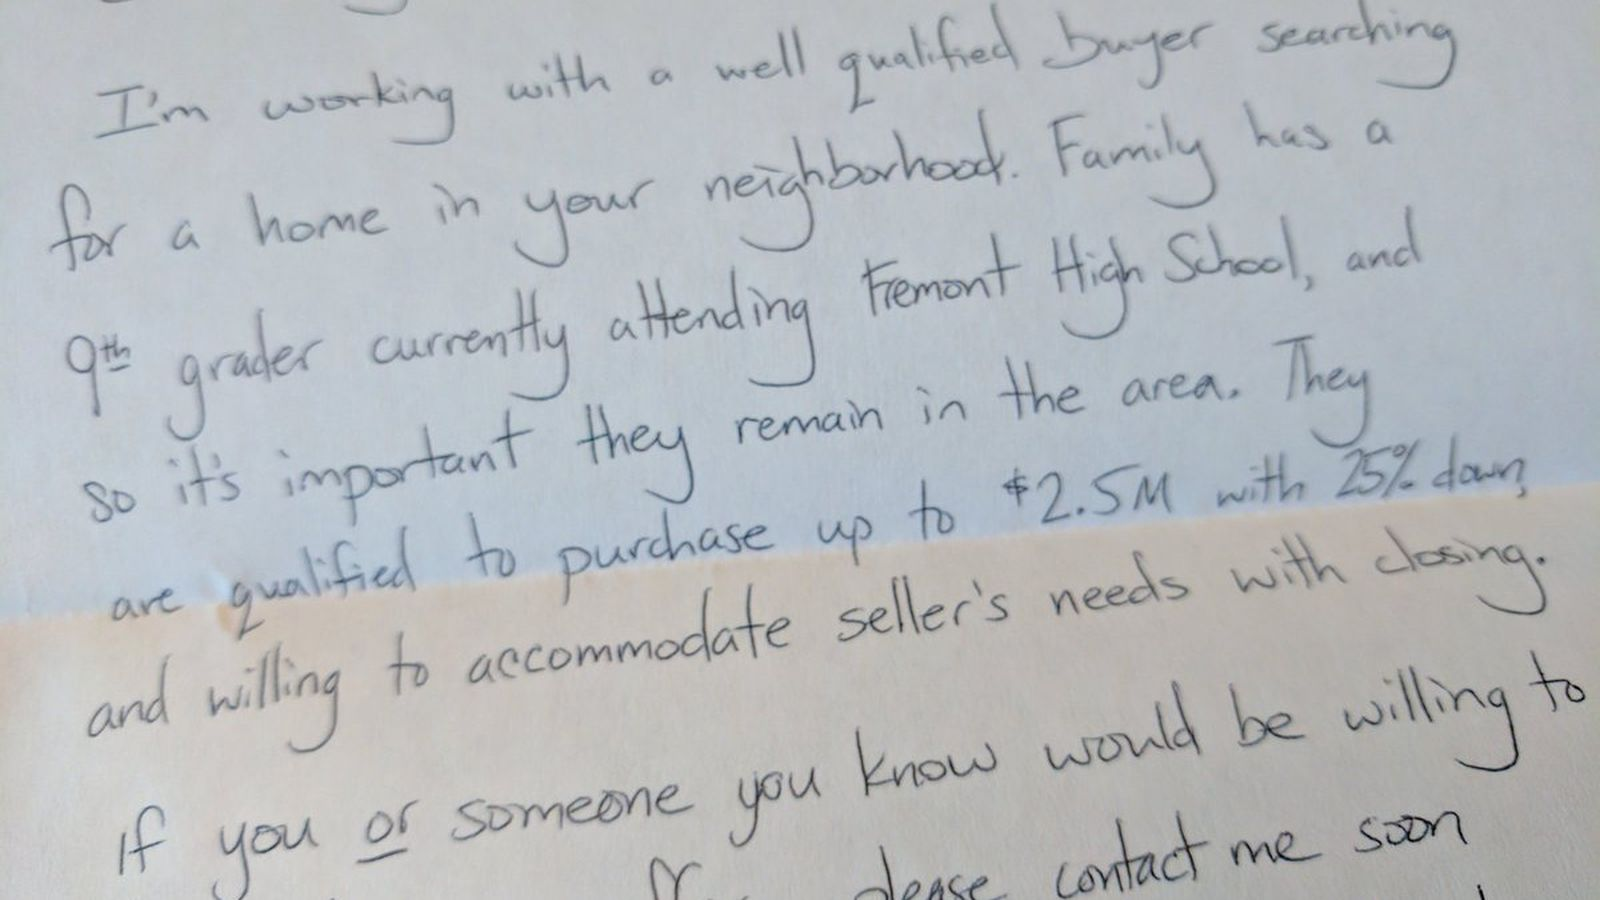 Realtor leaves handwritten letter on Google employee's